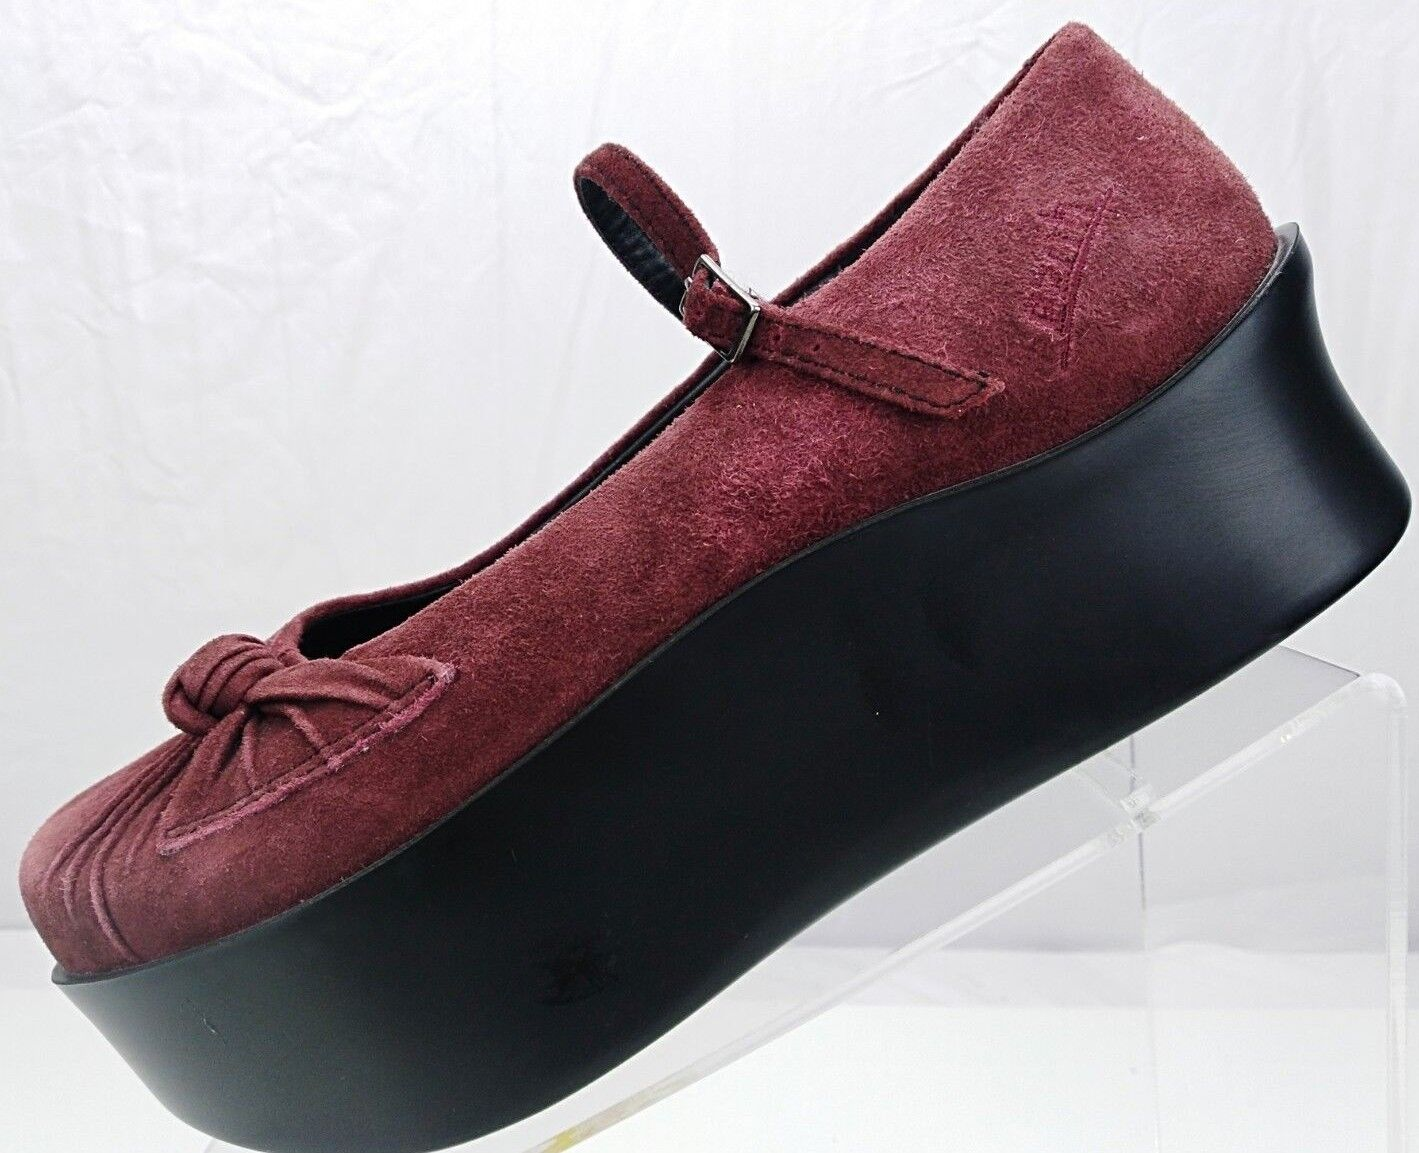 Earth Mary Jane - Casual Erika Platform Suede Leather Heels Women's 7 B Wine